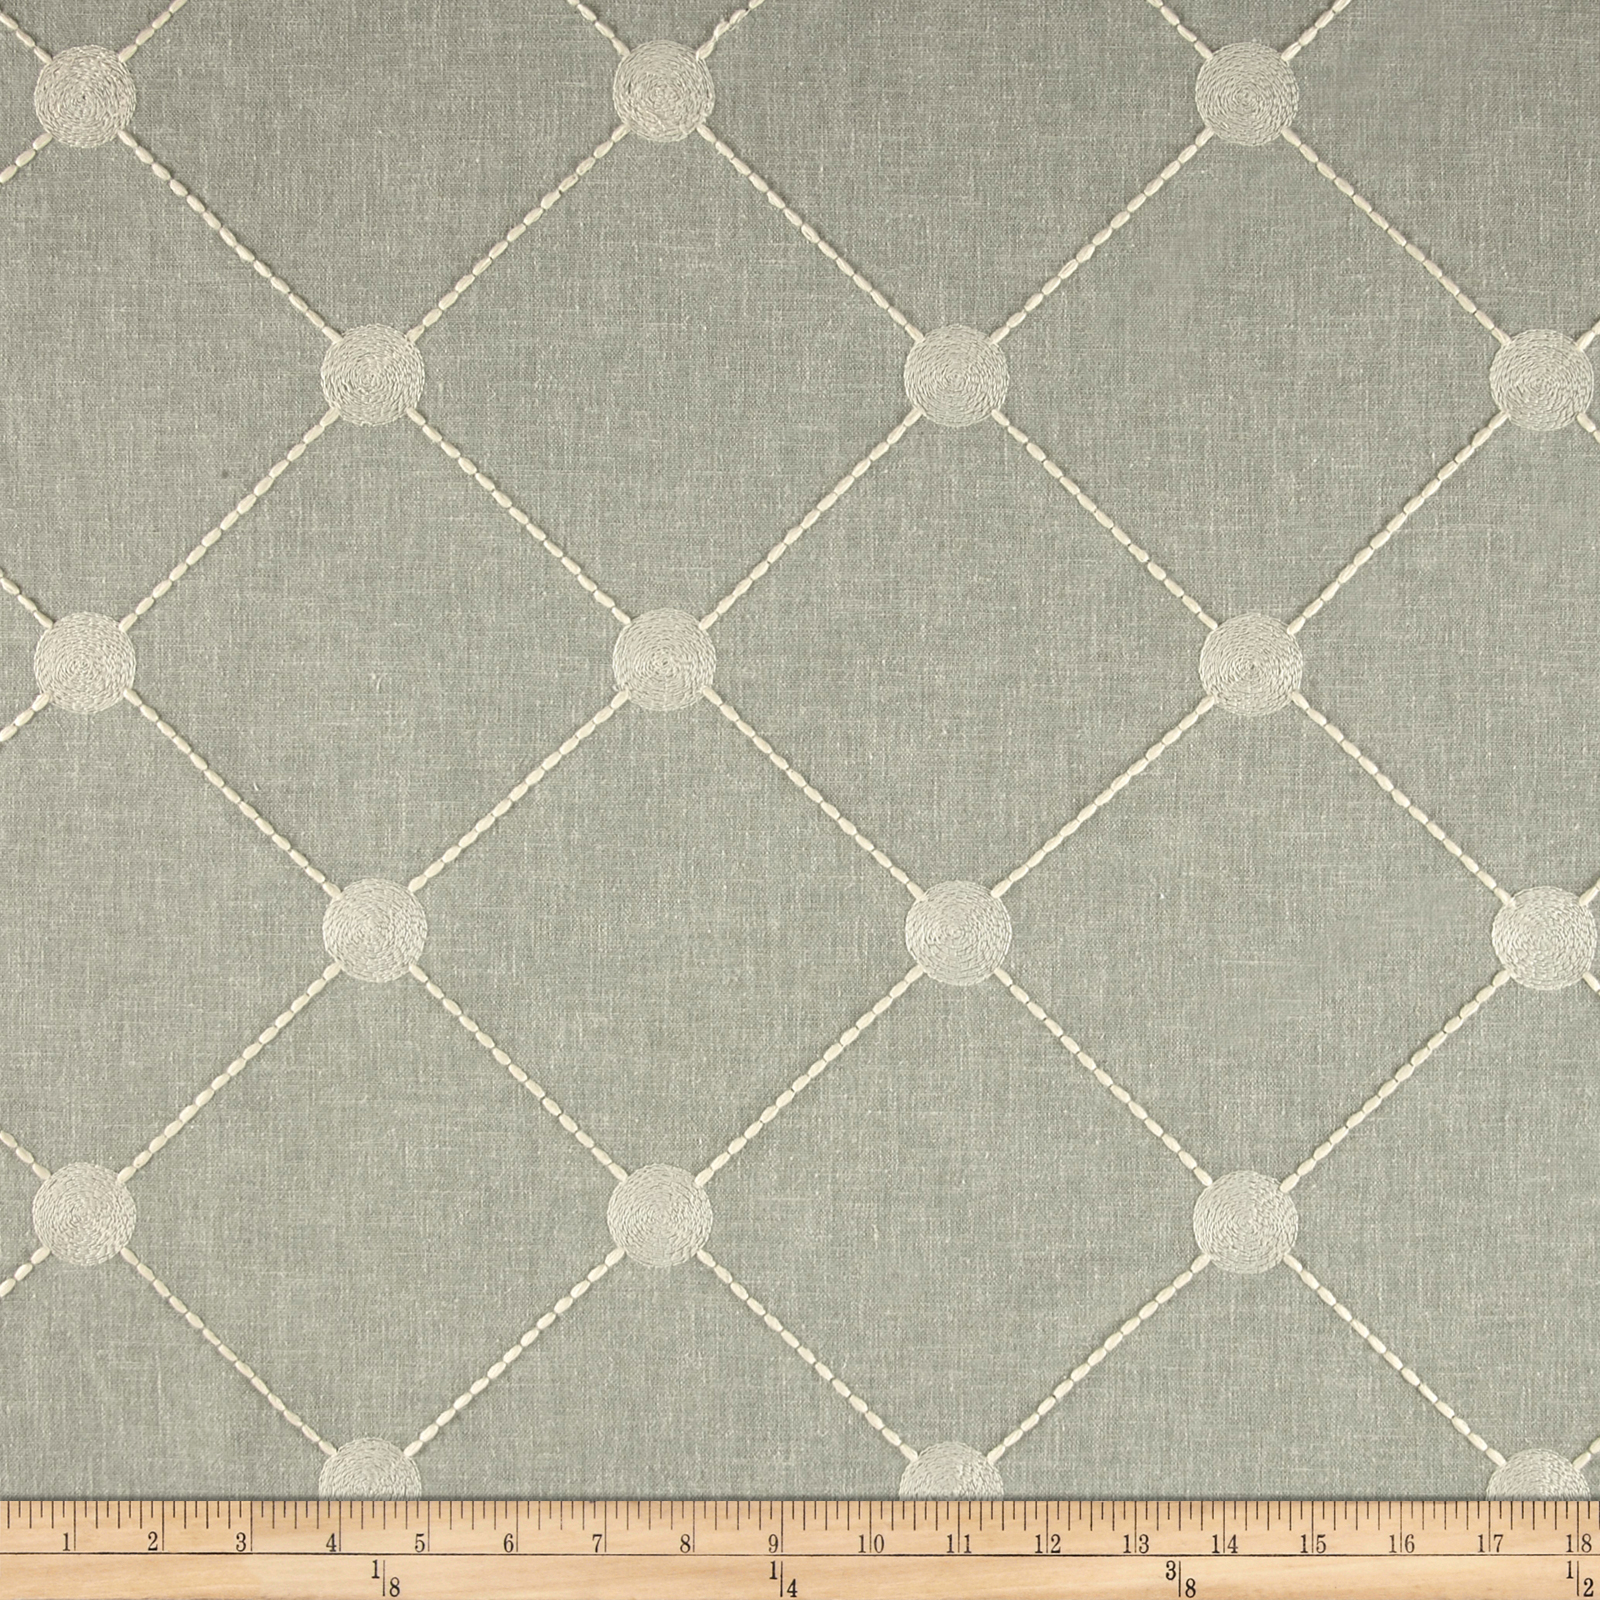 Kelly Ripa Home Fanfare Embroidered Spa Fabric by Waverly in USA